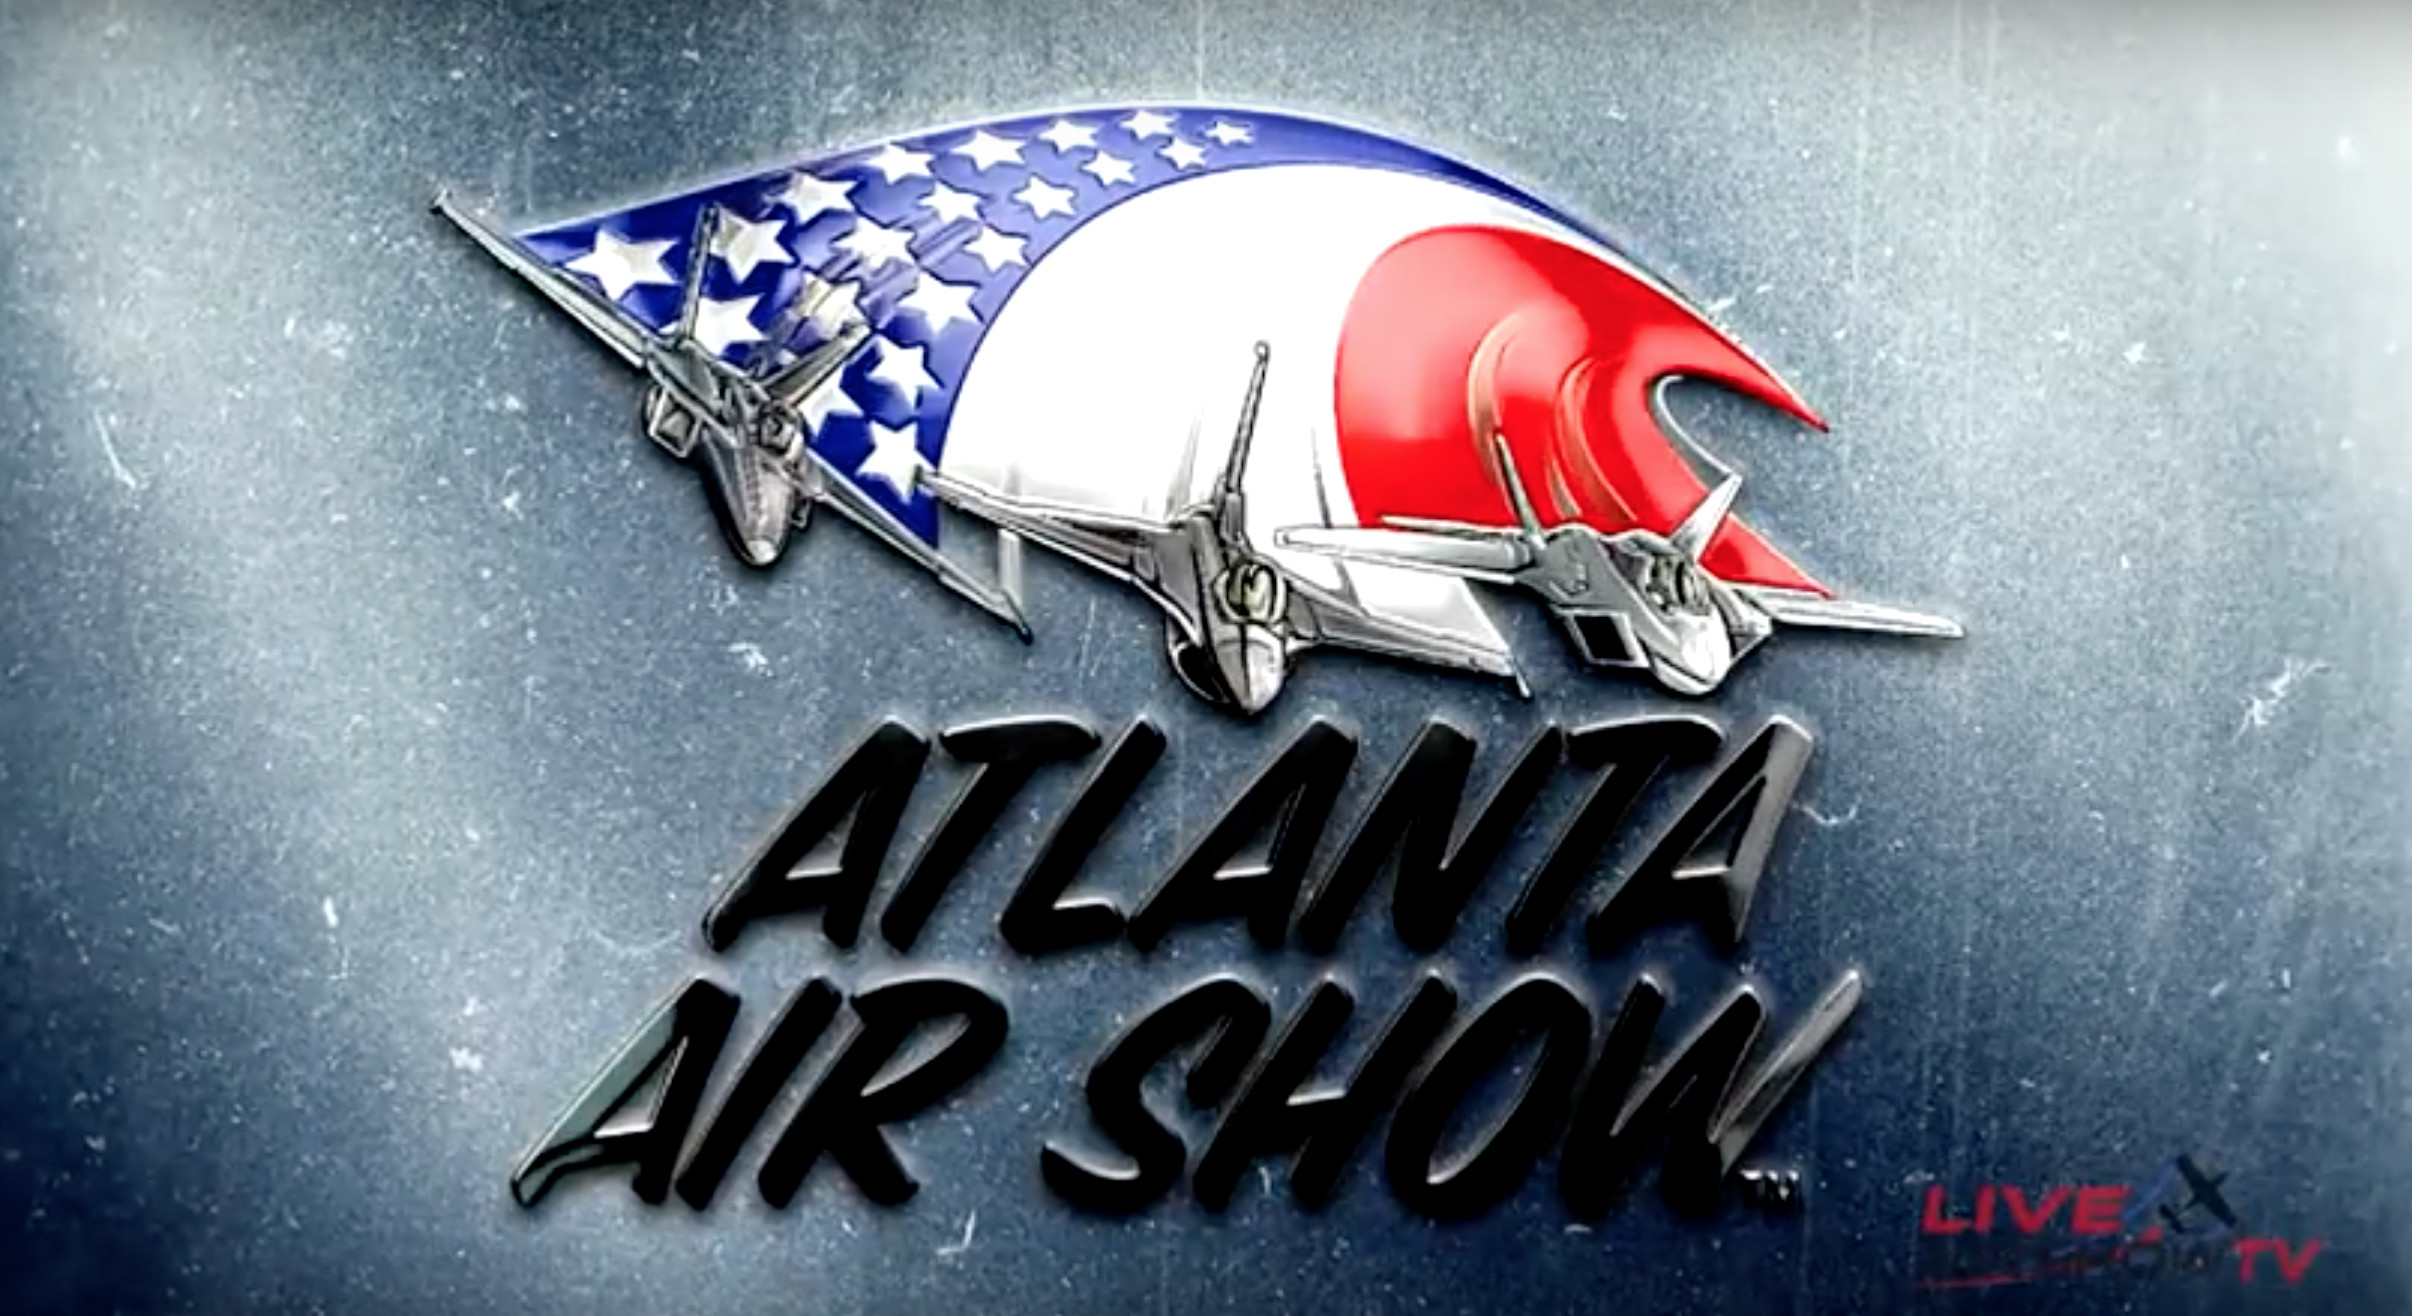 Atlanta Air Show logo